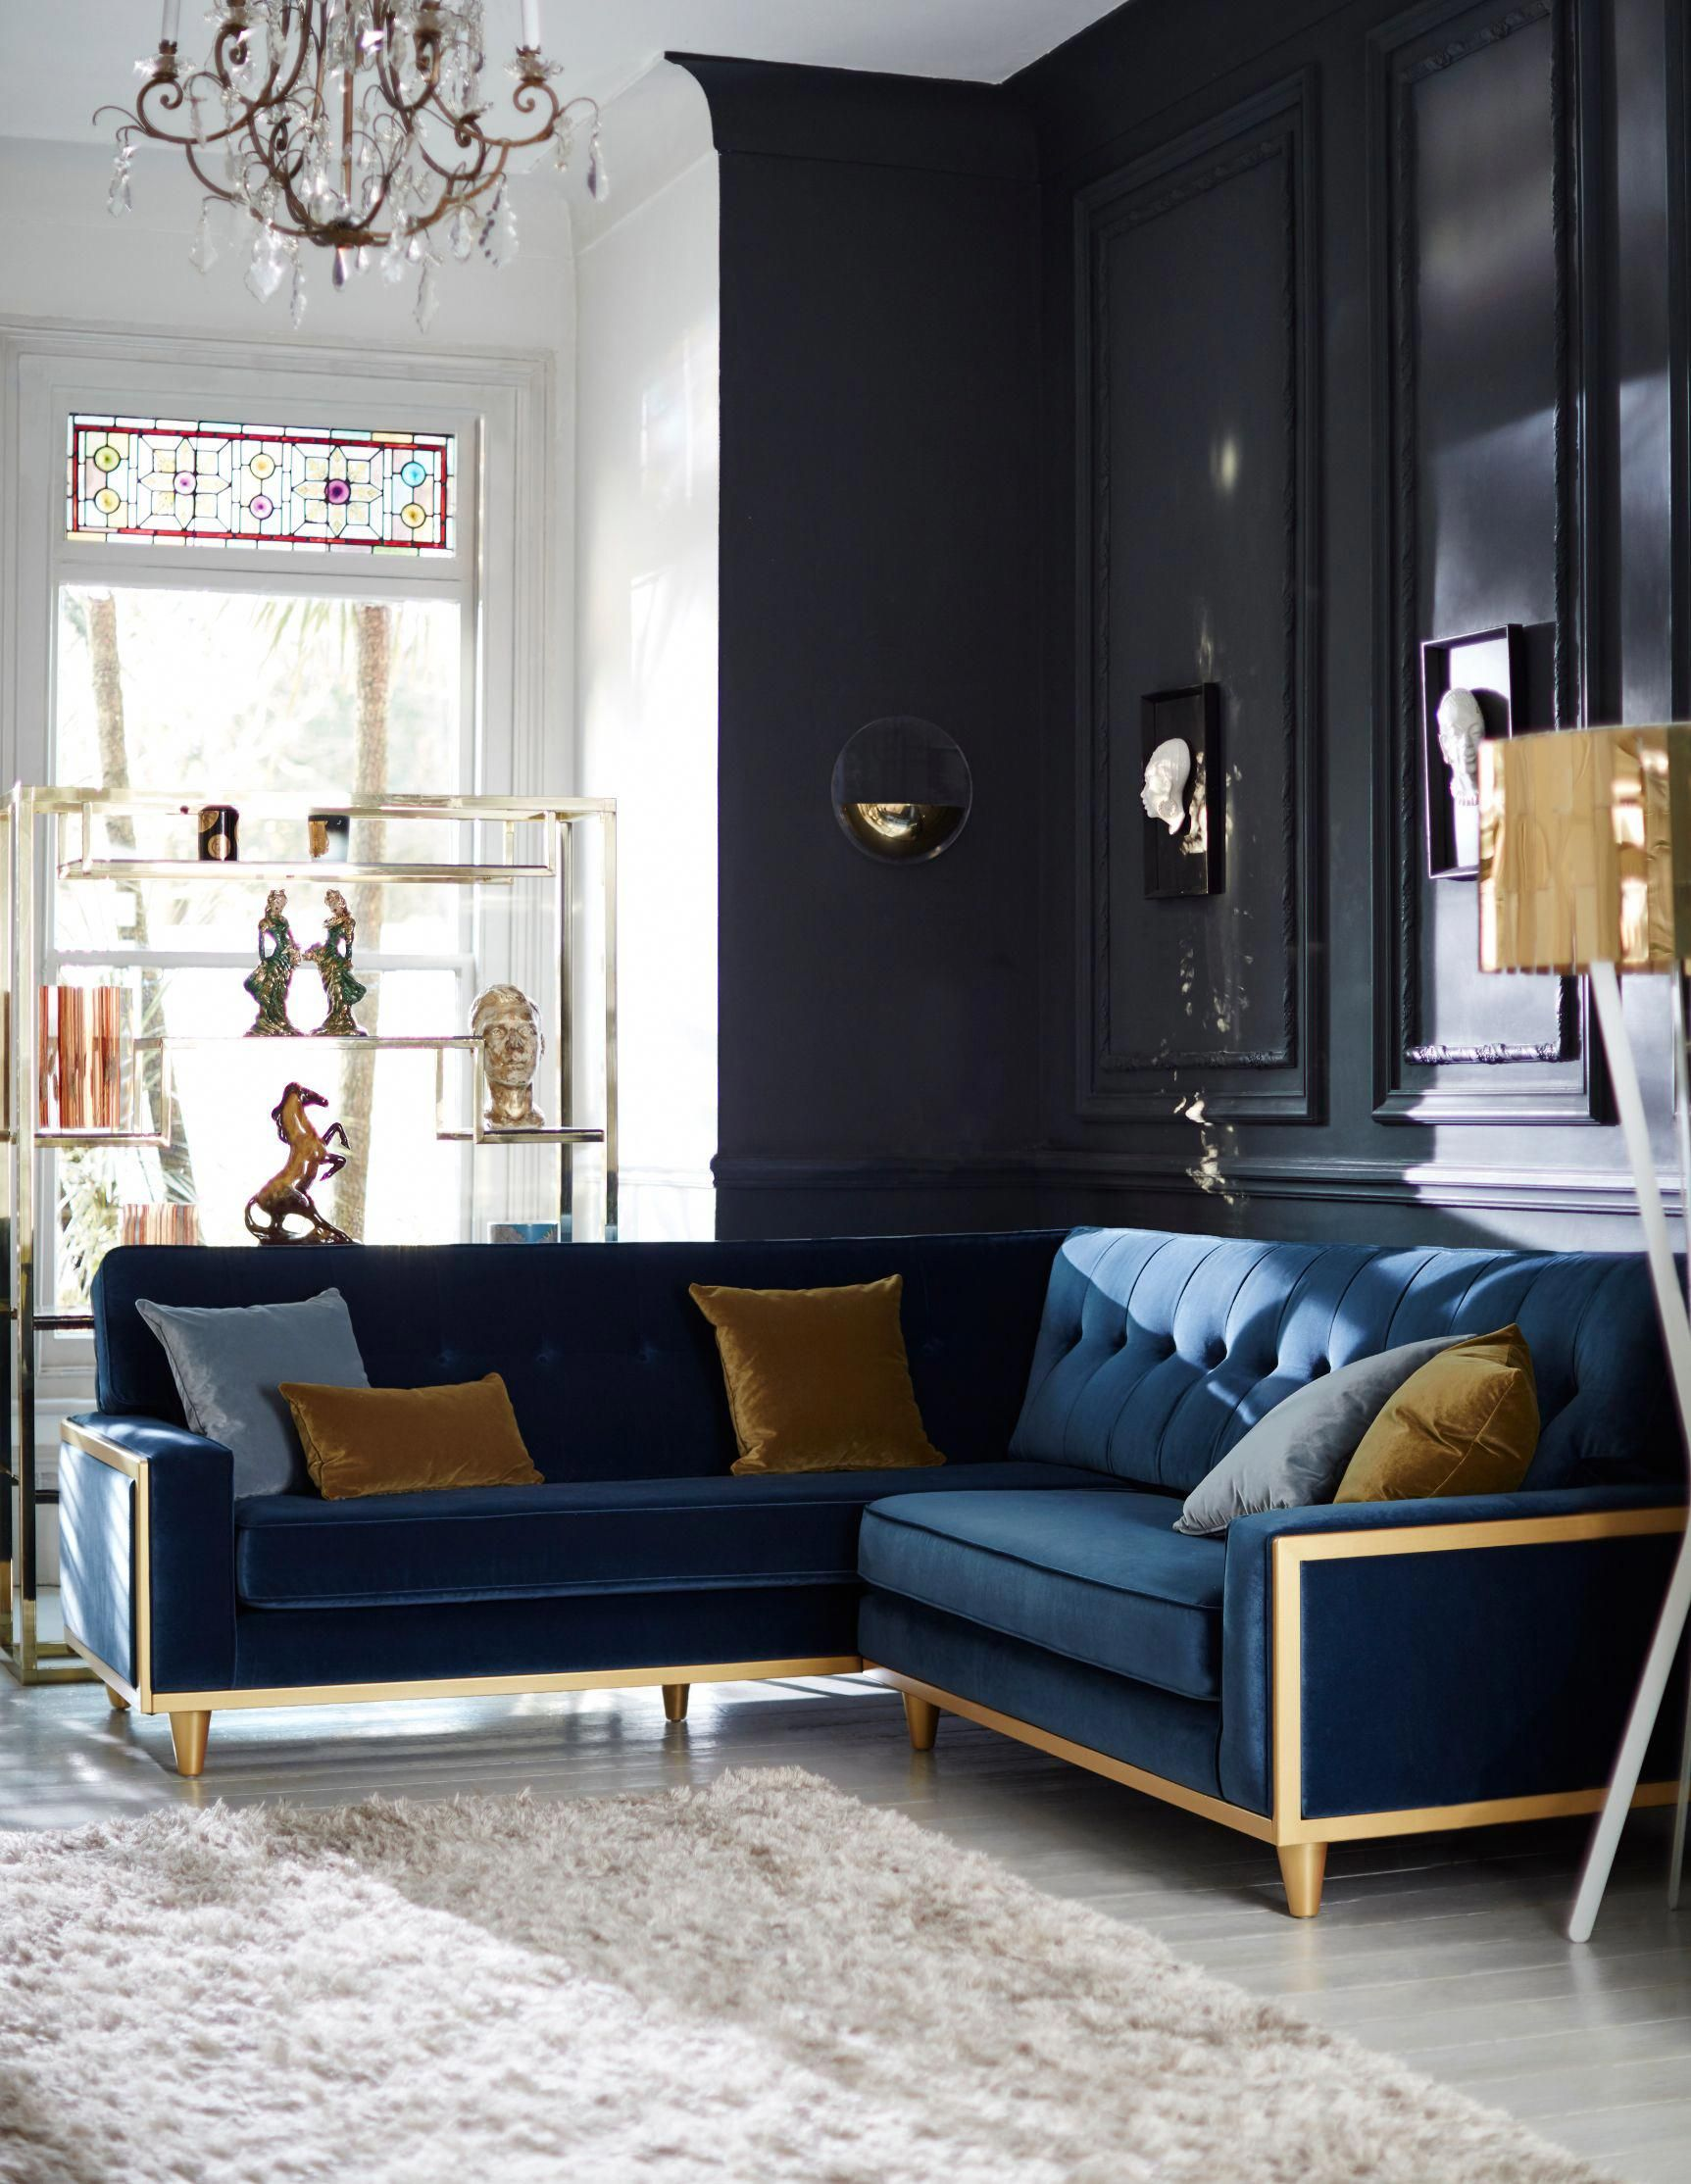 Lovely Corner Sofa Modern Take With The Gold But Still Has Quilted Back Luxurylivingroom Corner Sofa Living Room Velvet Sofa Living Room Living Room Sofa